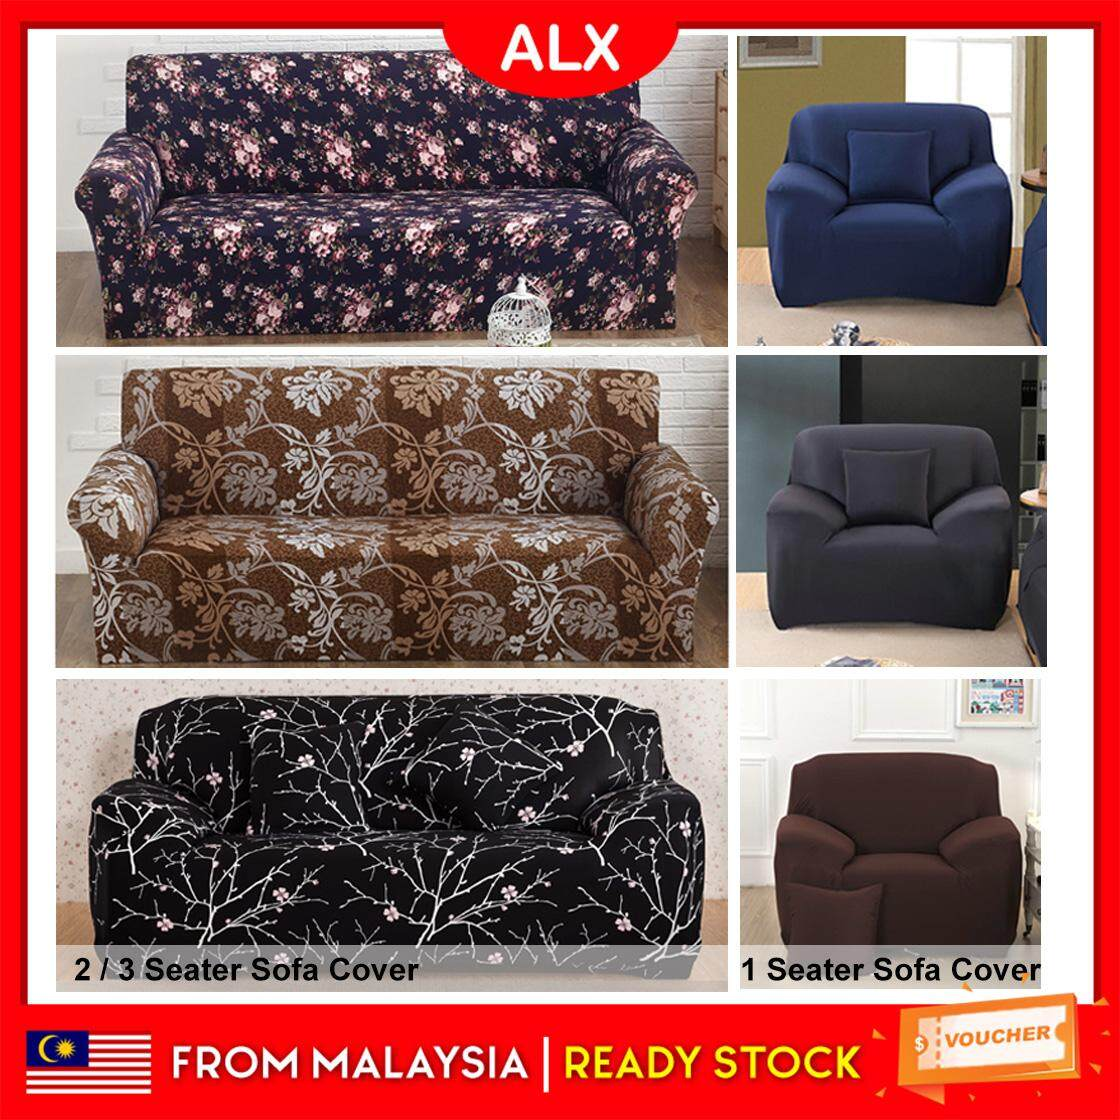 Super Alx Malaysia Seater Sofa Slipcover Stretch Protector Soft Couch Cover Elastic Fitted Sofa He Gmtry Best Dining Table And Chair Ideas Images Gmtryco